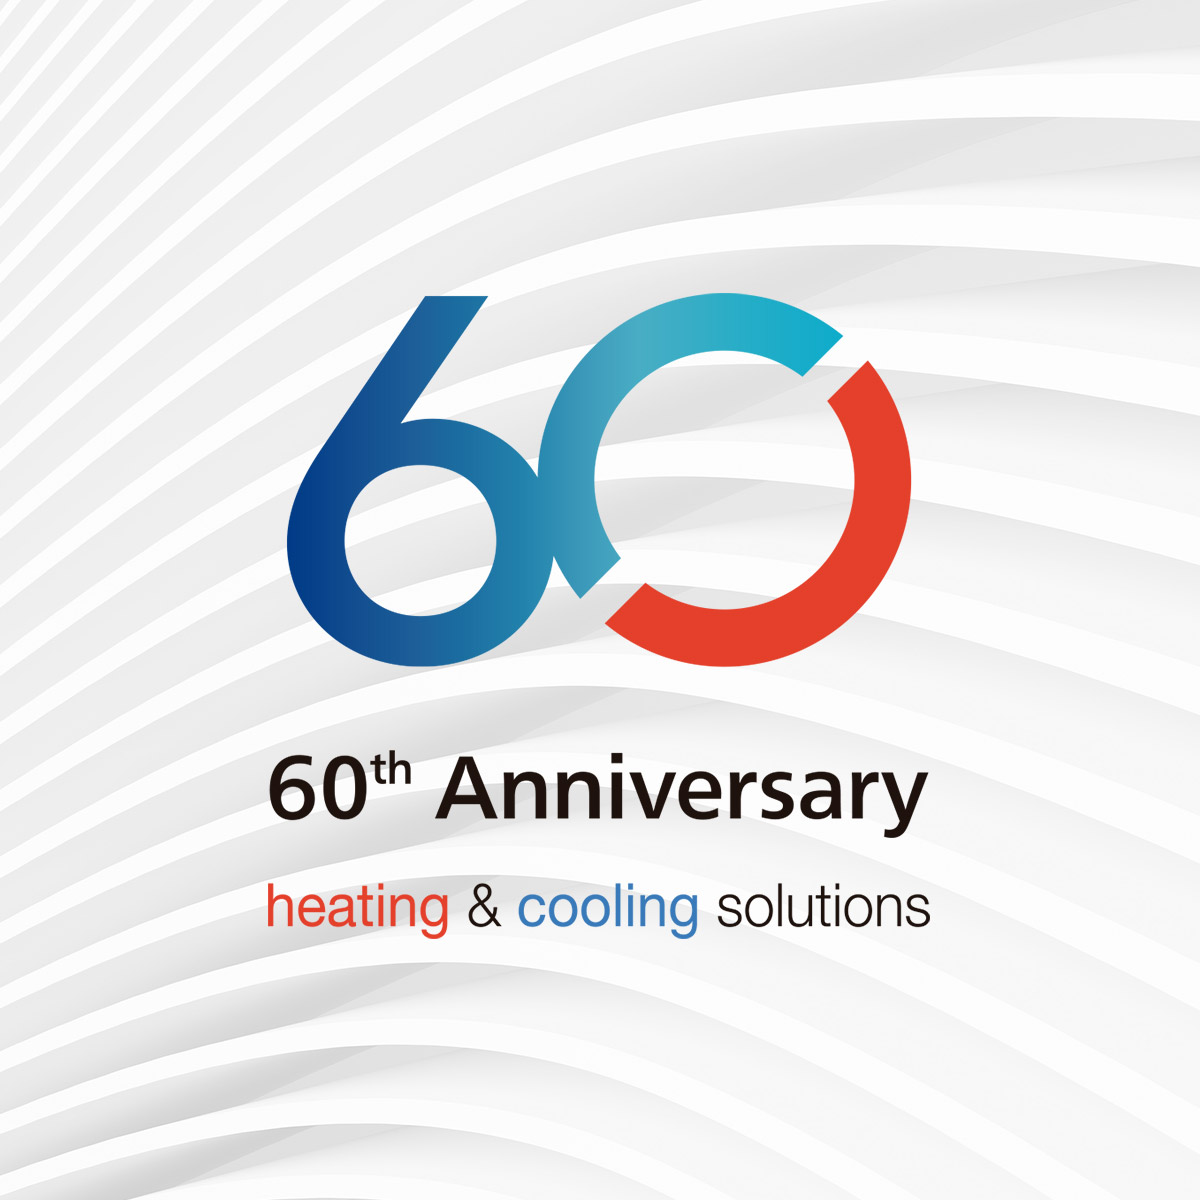 We partner with innovation - For more than 100 years Panasonic has been dedicated to creating technical solutions that generate value and benefit to its users. Six decades ago the company took aim at producing the best heating and cooling solutions. Constant innovation throughout that period has resulted in numerous groundbreaking technologies and our specialists are certain that Panasonic heat pumps are the best in the world. Happy birthday, Panasonic!